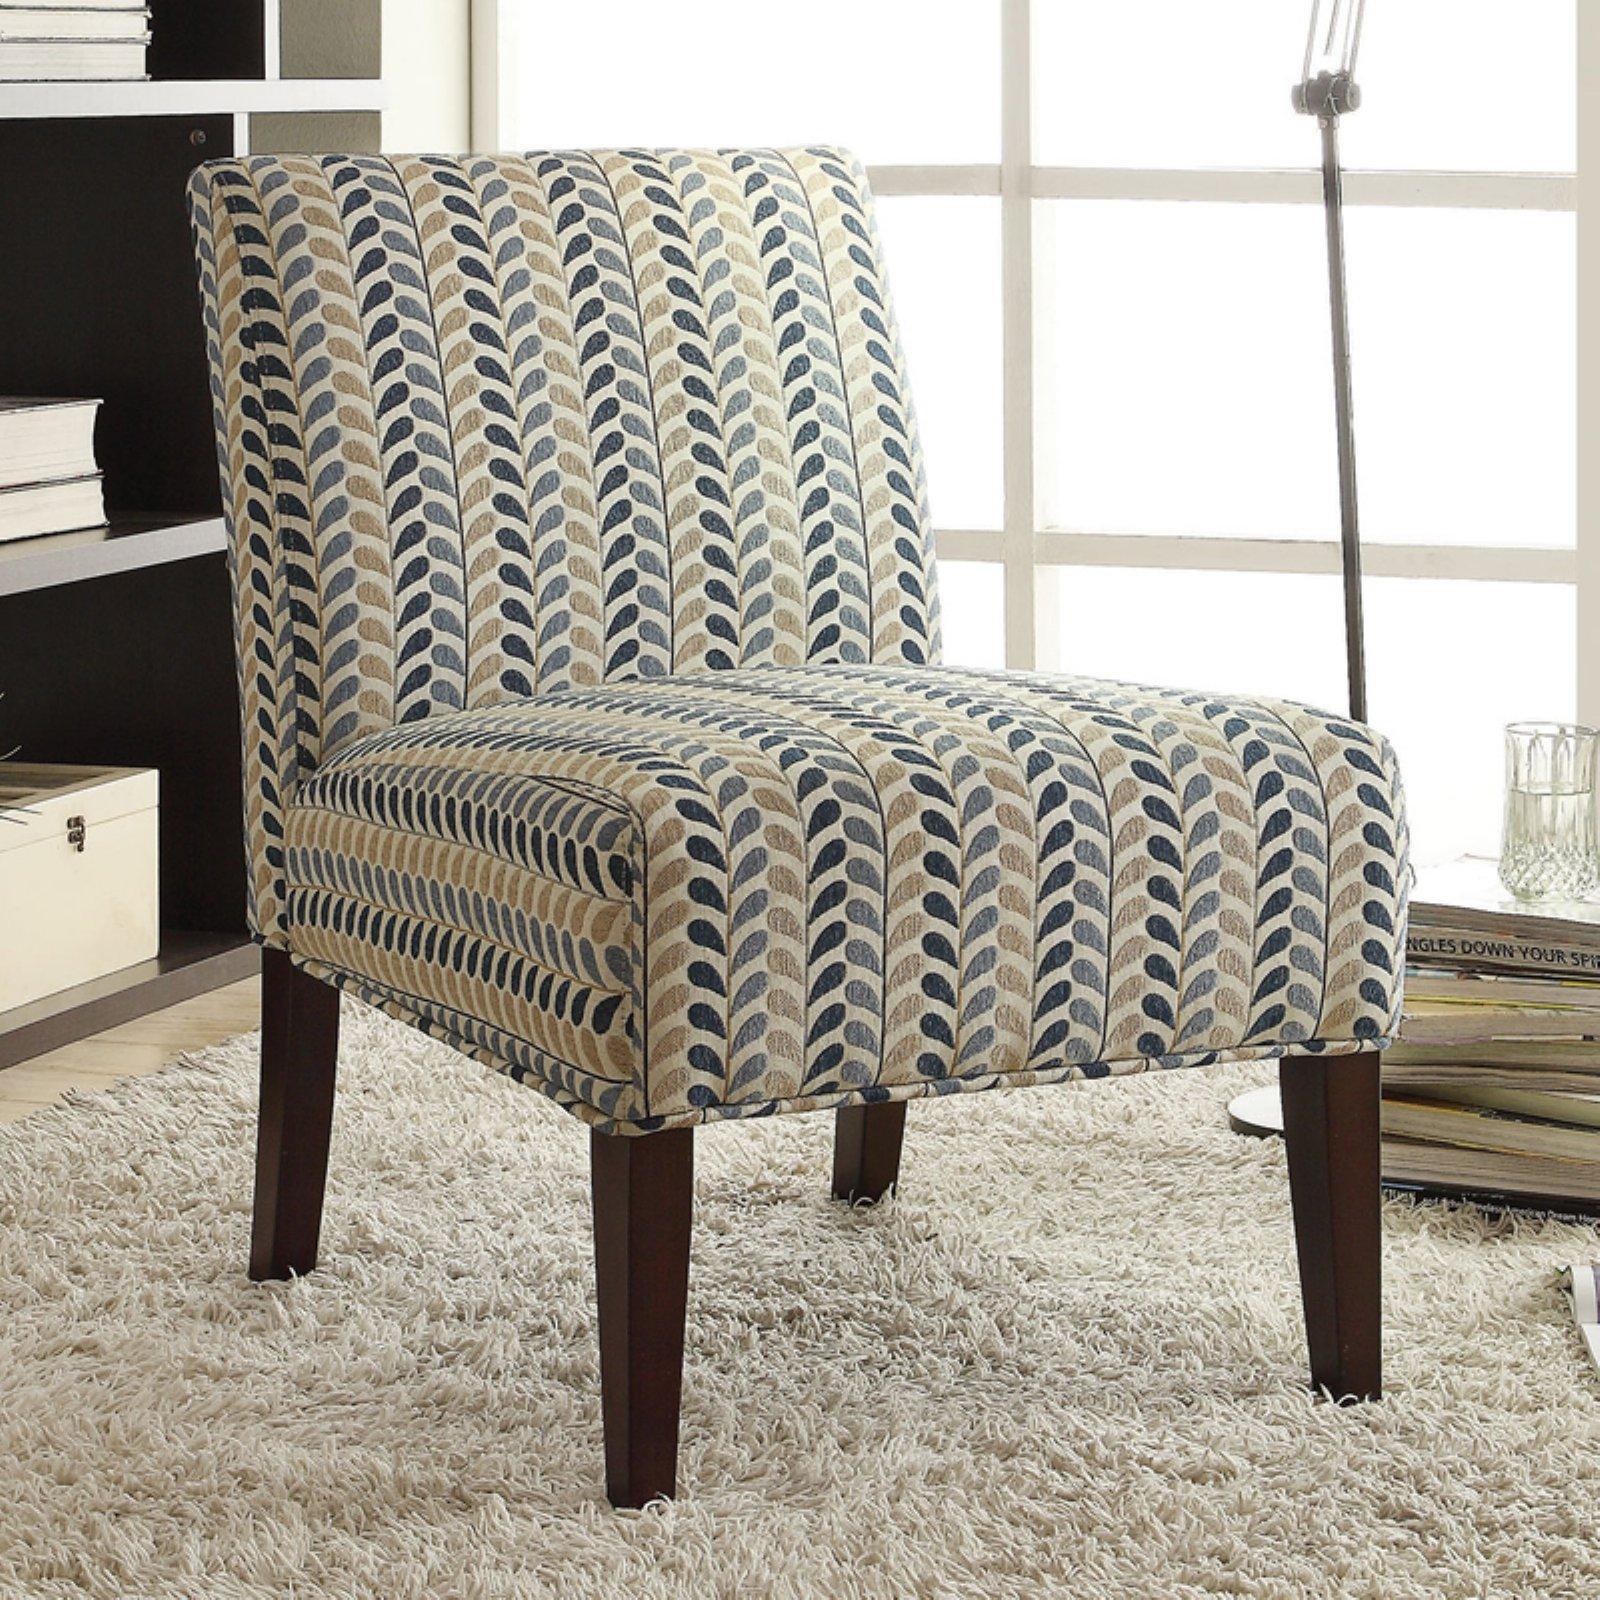 Coaster Company Accent Chair, Blue Beige, Woven Fabric, Cappuccino